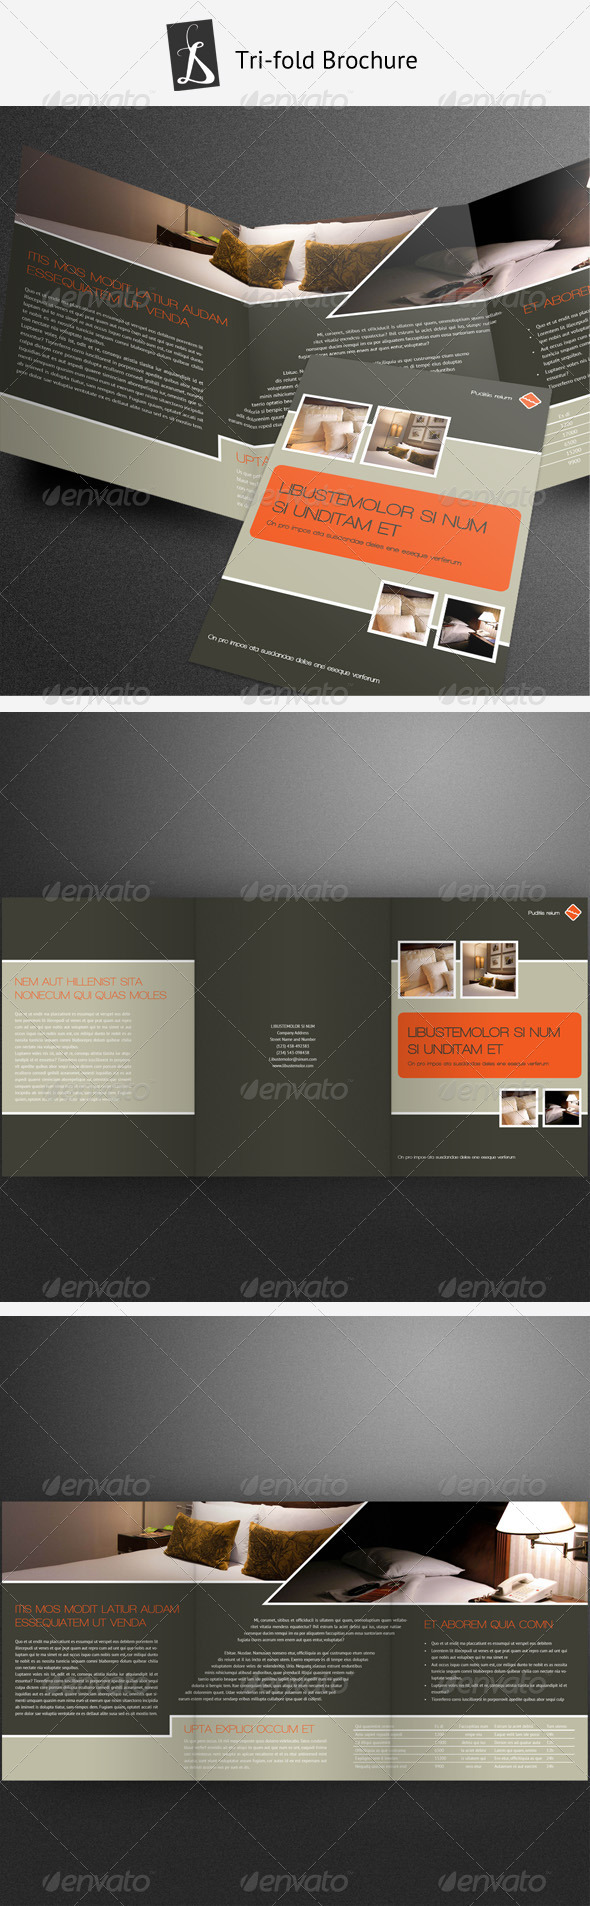 GraphicRiver Tri-fold Brochure 6 1479045